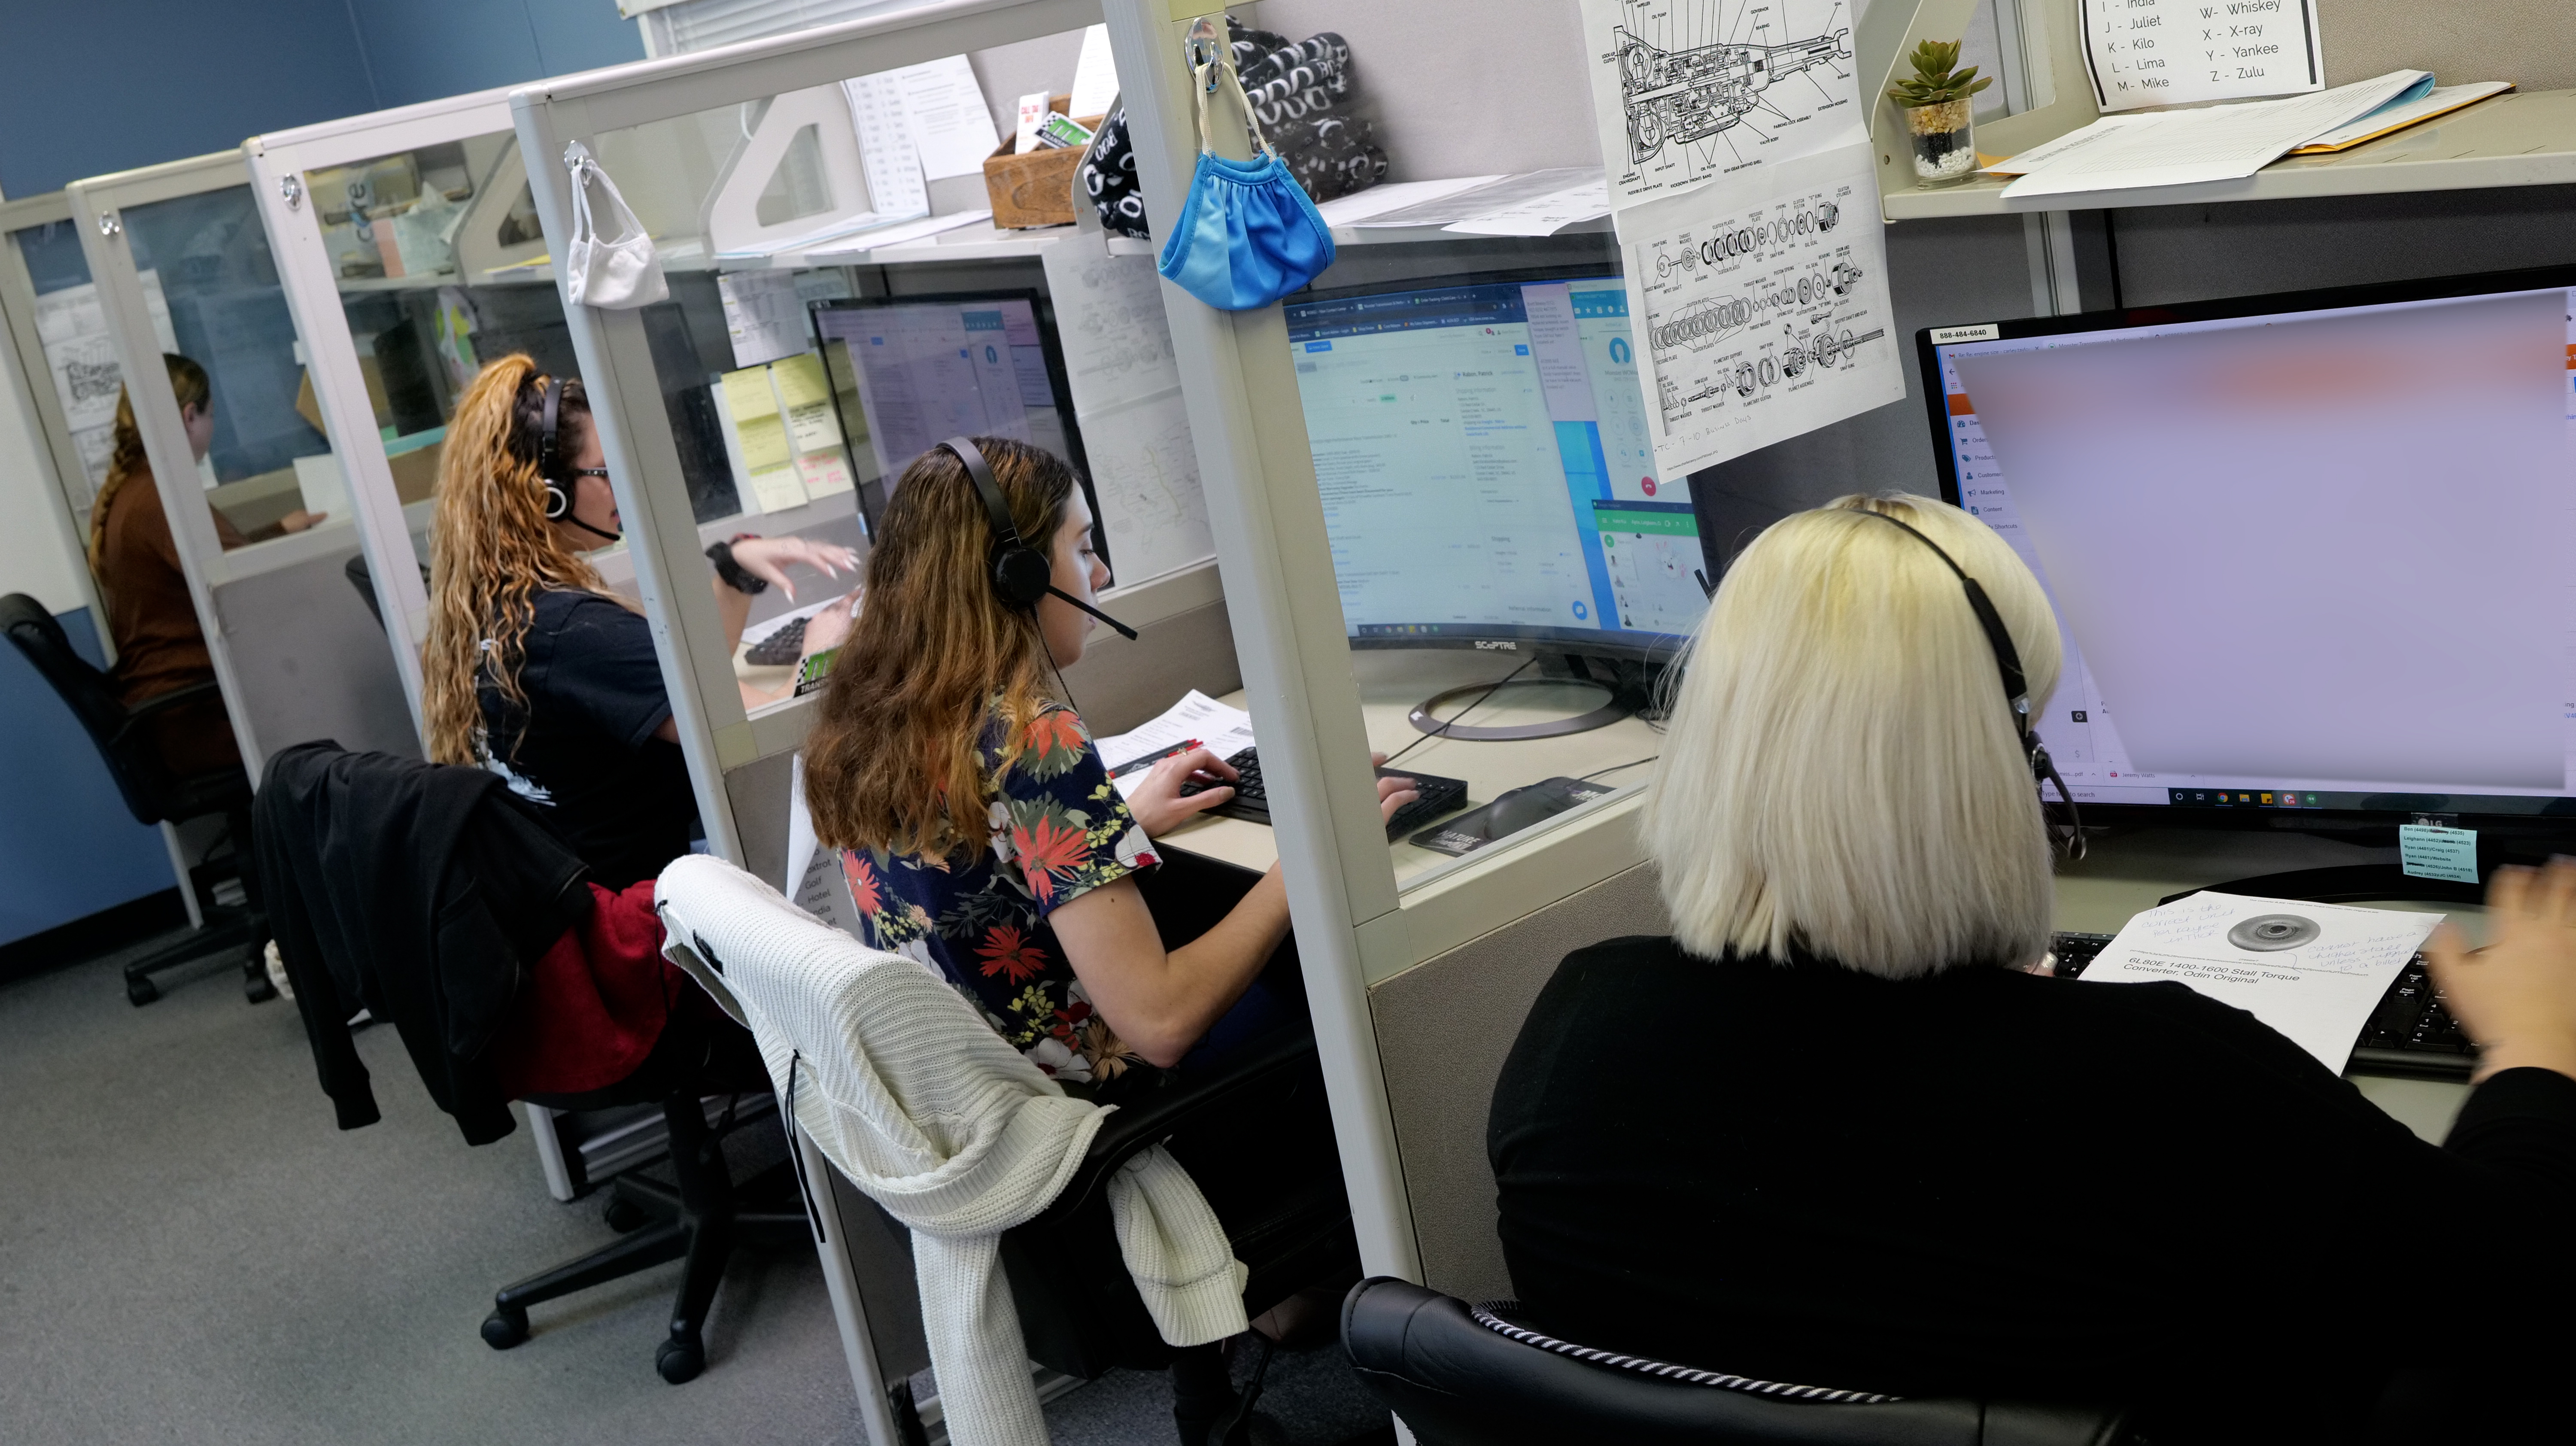 Employees taking calls at their workstations